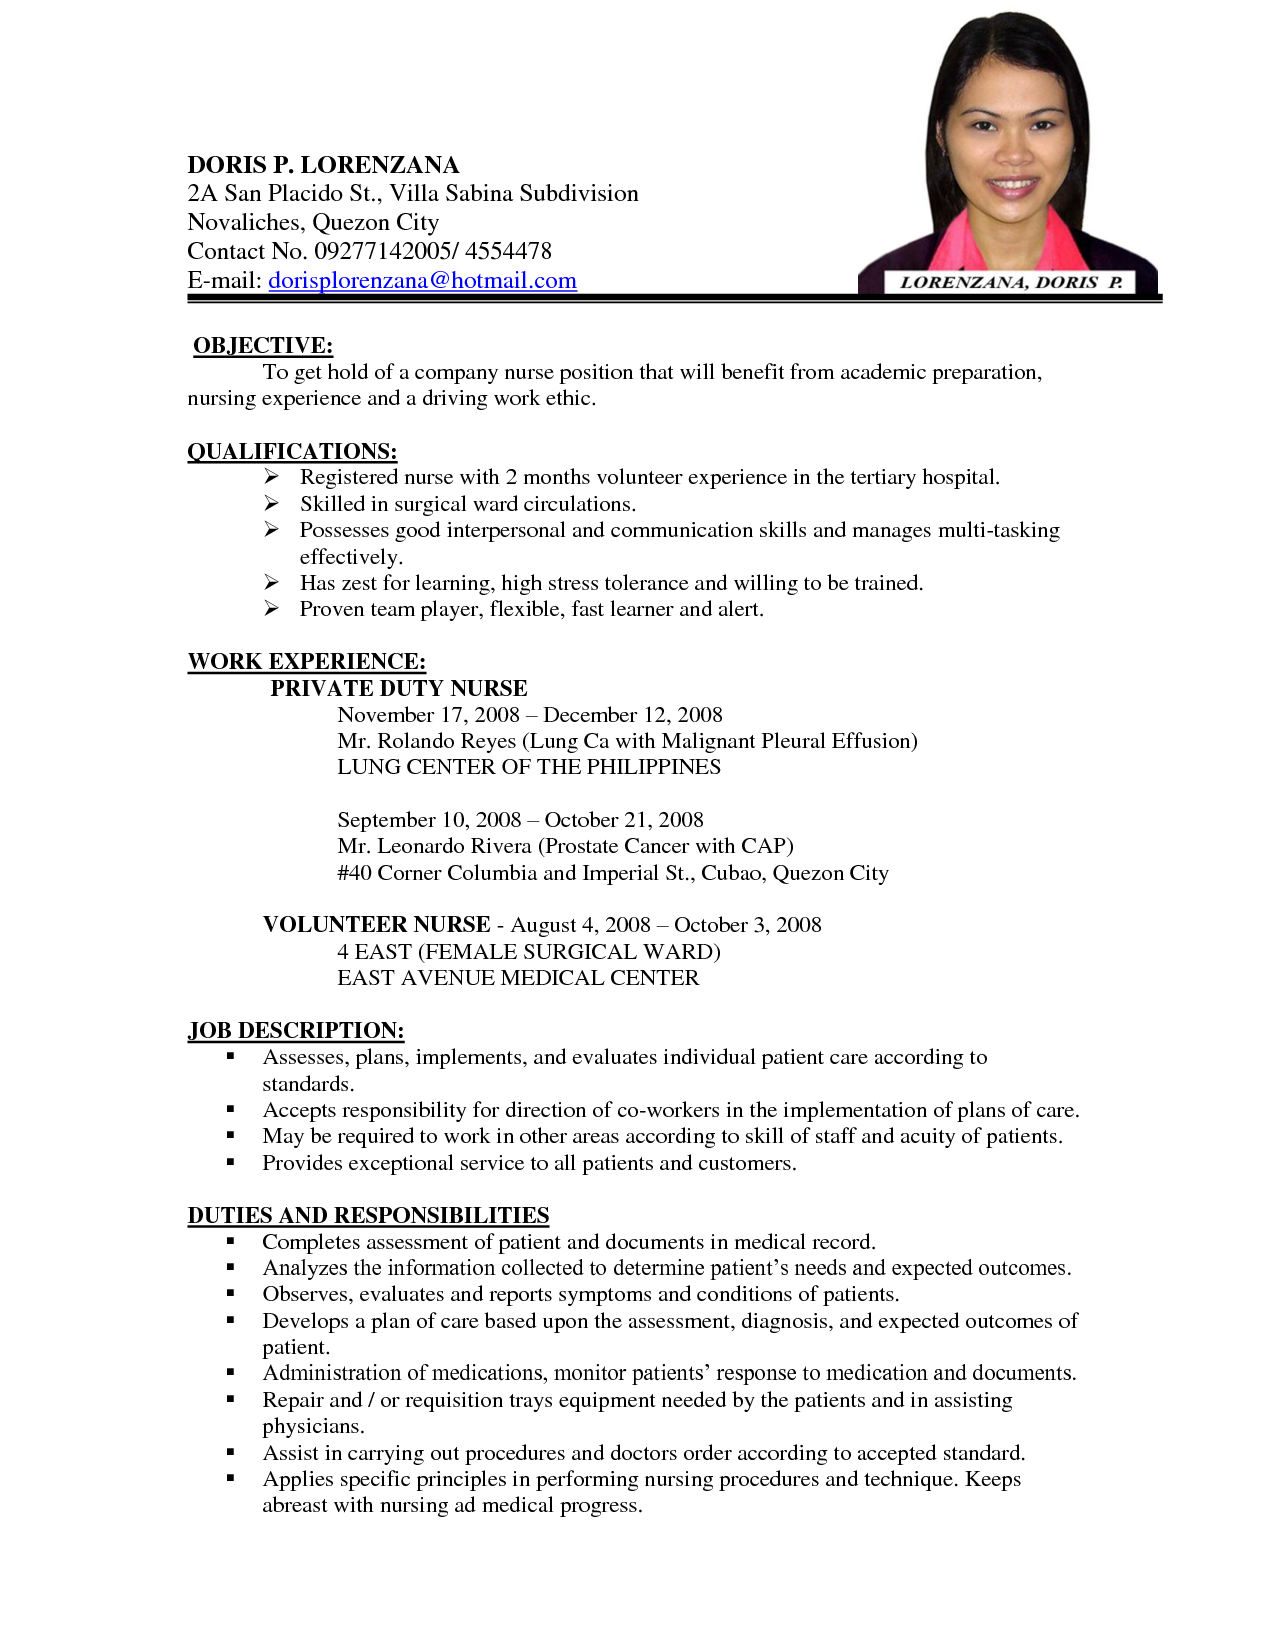 registered nurse curriculum vitae sample